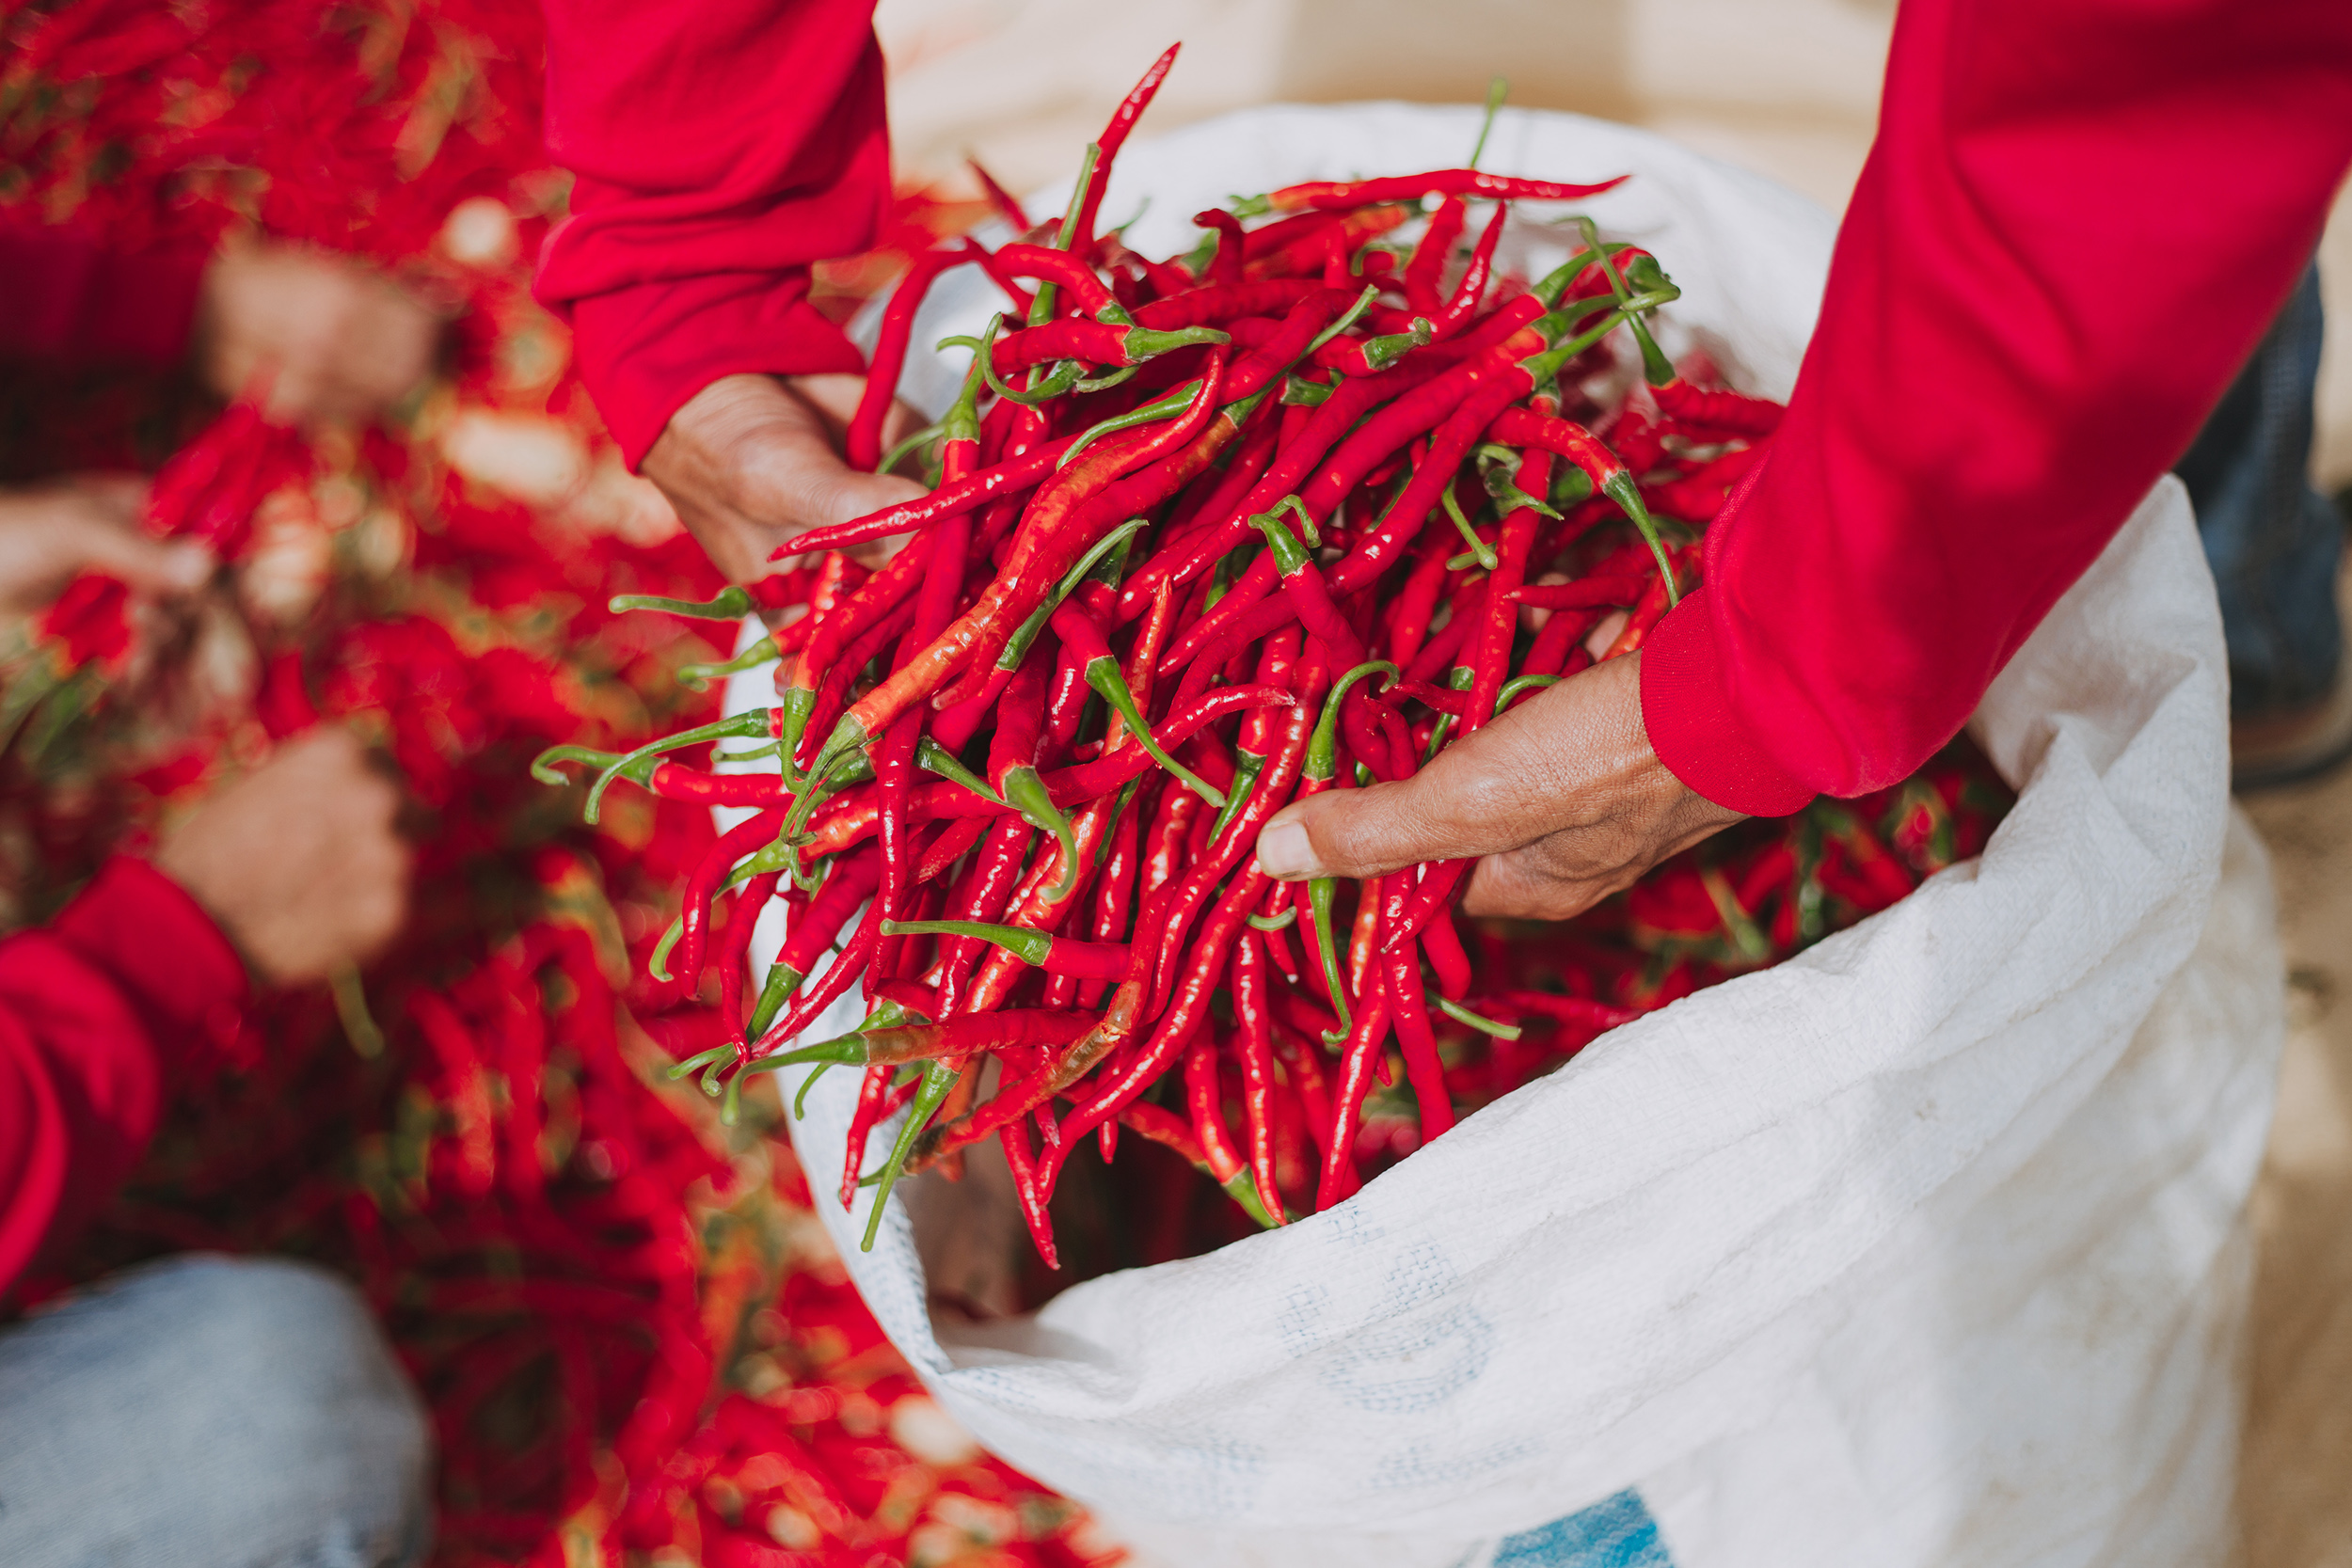 Farming Spicy Swap Fees With SPI